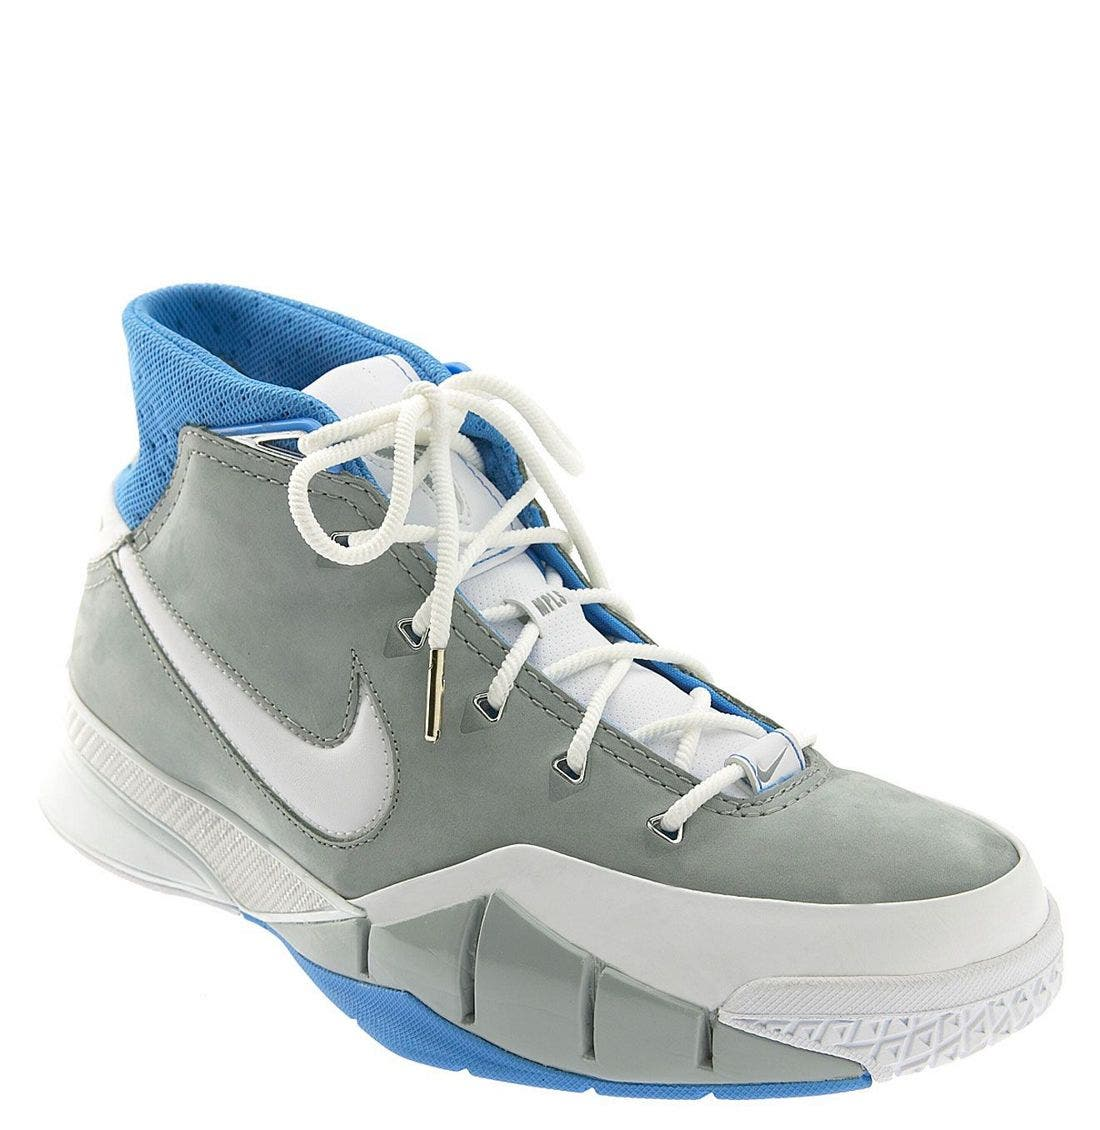 'Air Zoom Kobe I' Basketball Shoe, Main, color, GYW